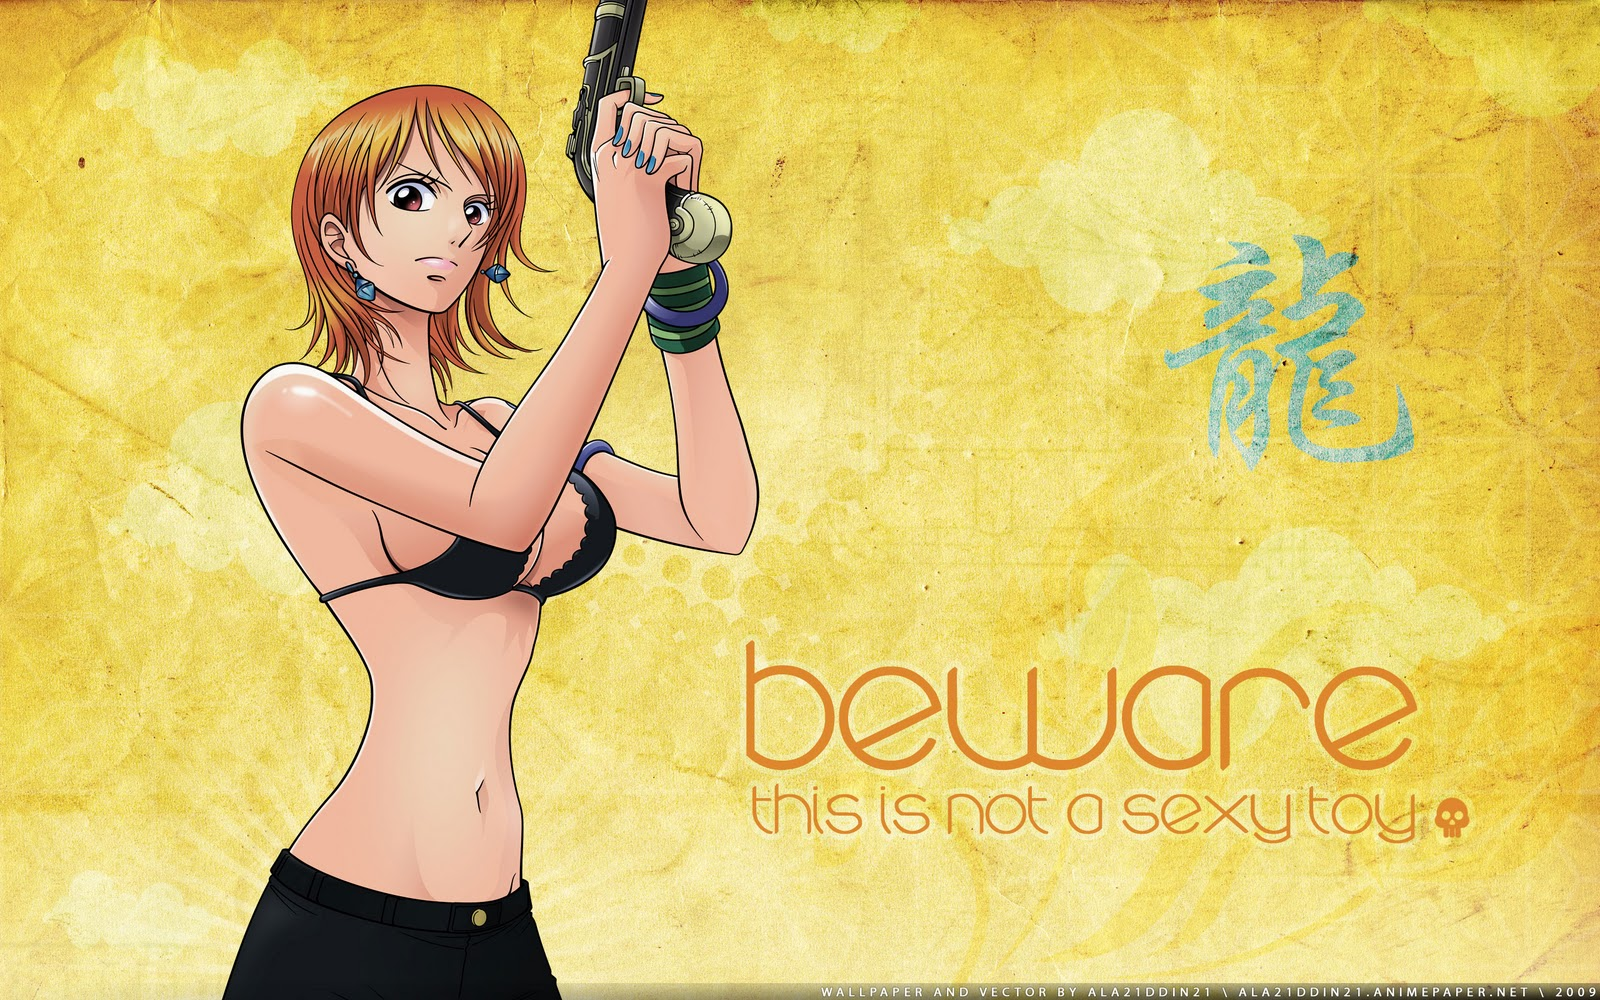 سكس نامي ون بيس http://x-anime-wallpaper.blogspot.com/2011/11/sexy-nami-one-piece-wallpaper.html